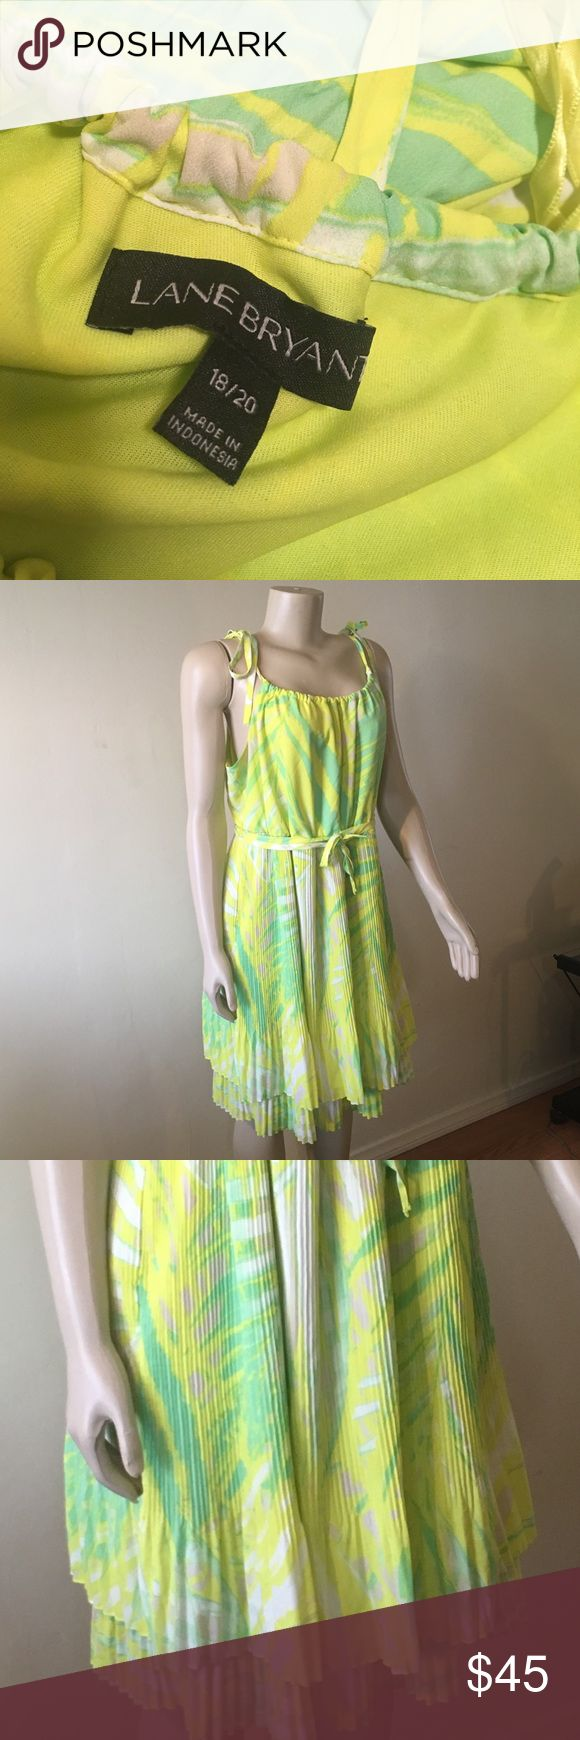 Layne Bryant Bright Pleated Dress Layne Bryant Yellow and Green Festive Dress. Ties at Shoulders and Waist, two Teirs of Pleats.  wrinkle Free. Layne Bryant Dresses Midi